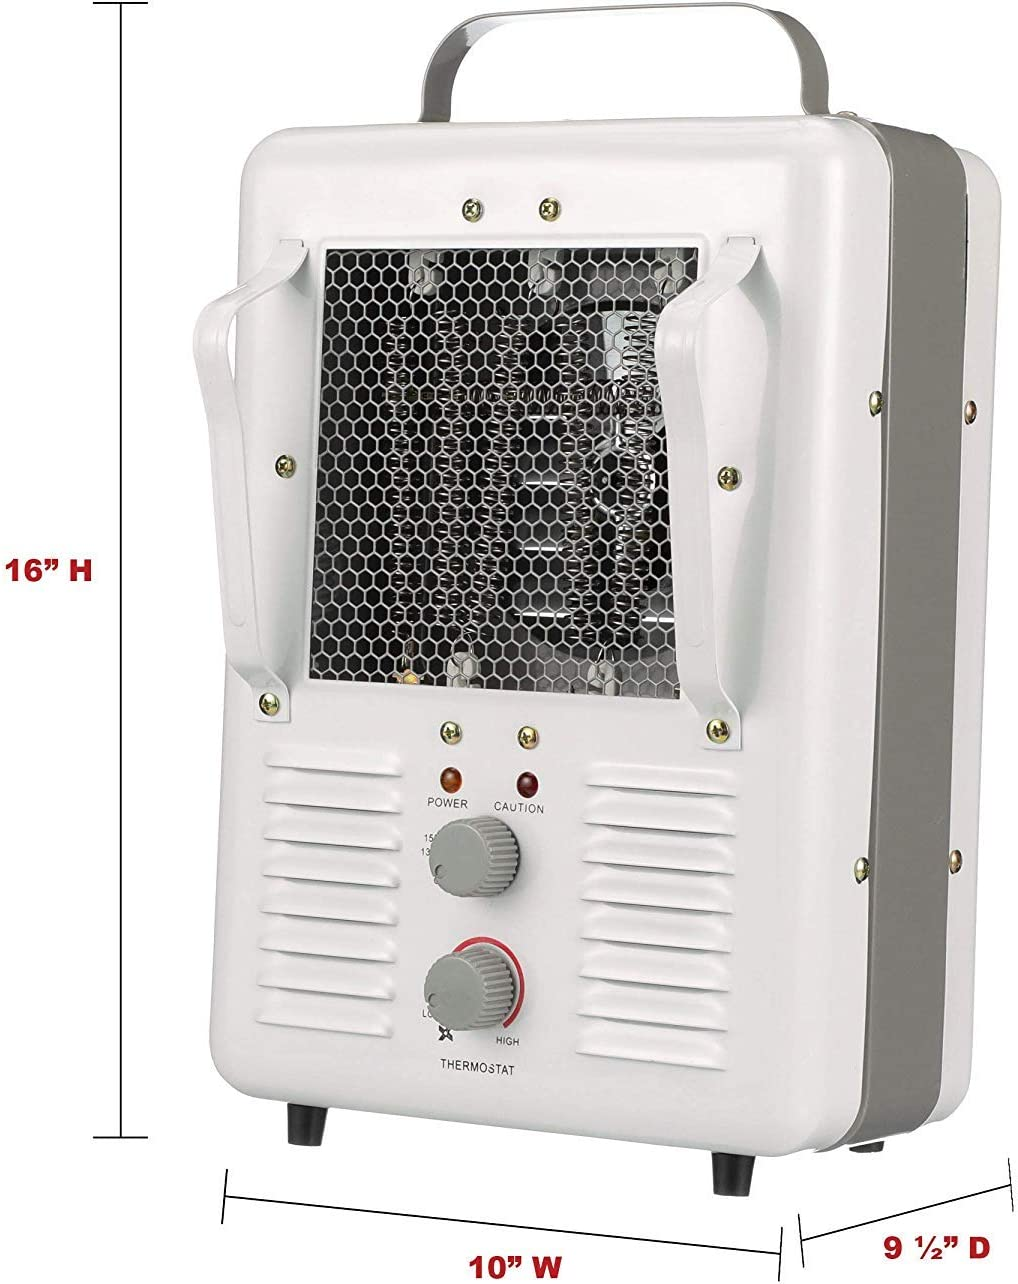 tpi portable electric heater 188tasa